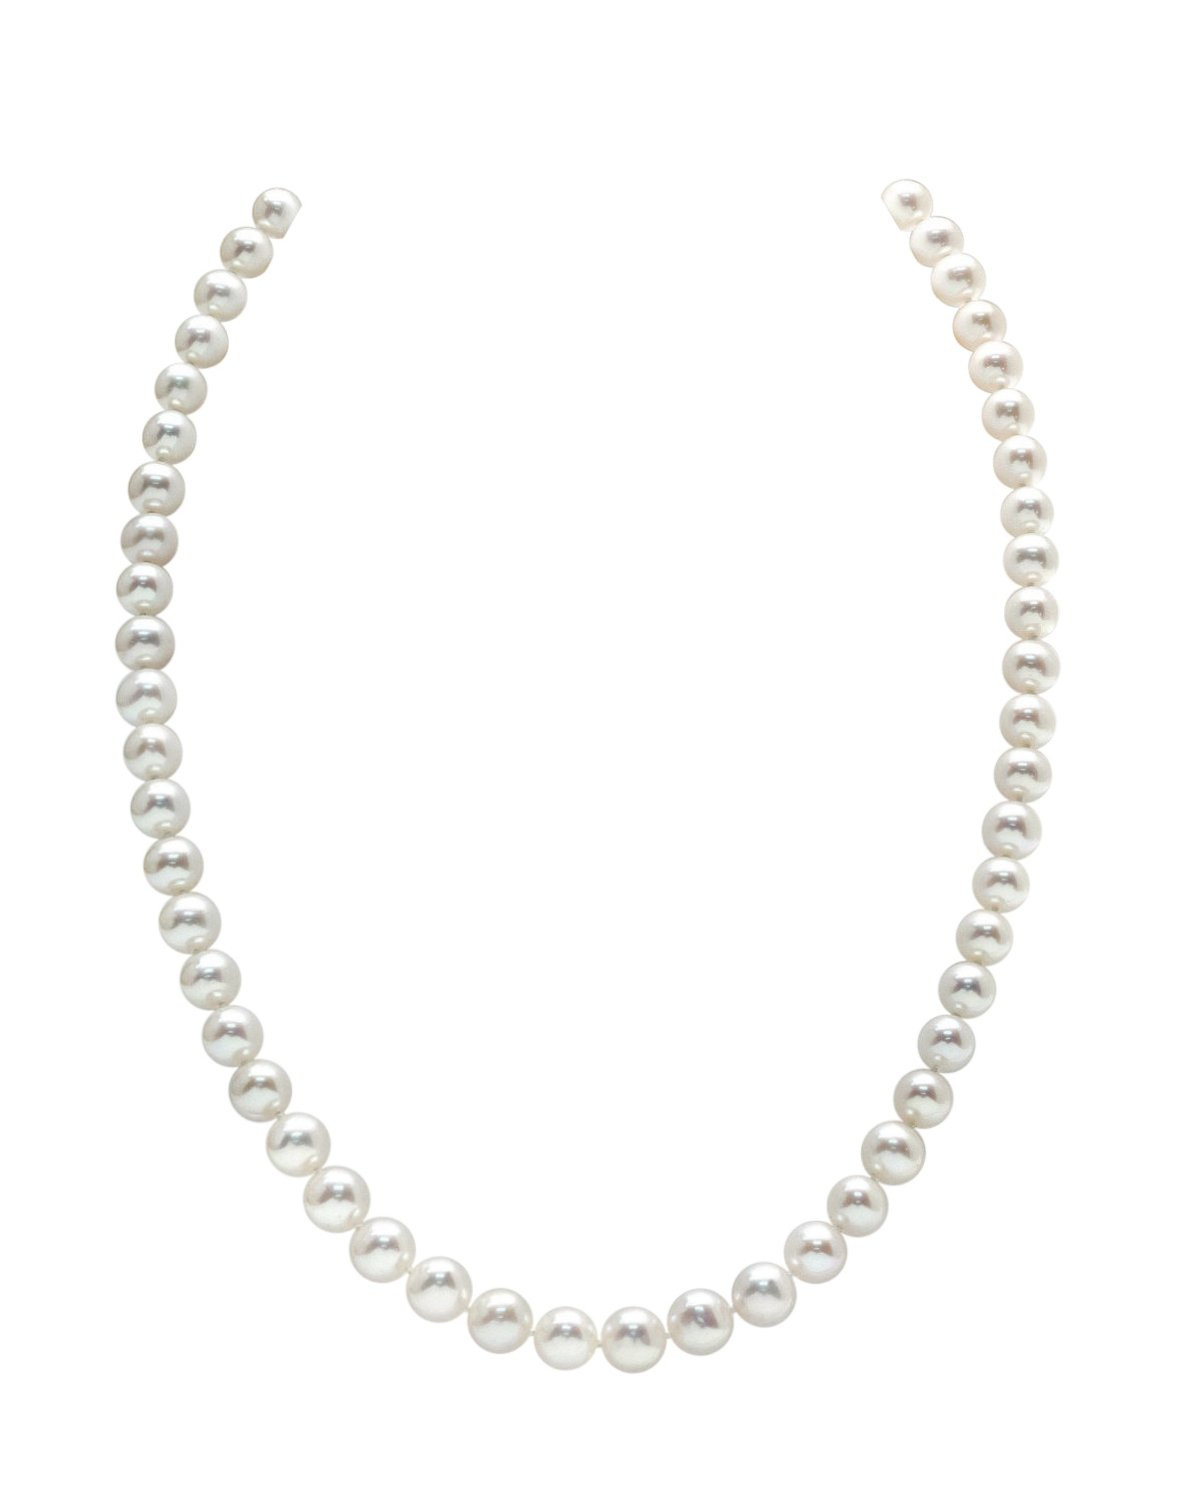 14K Gold 7-8mm White Freshwater Cultured Pearl Necklace, 17'' Princess Length